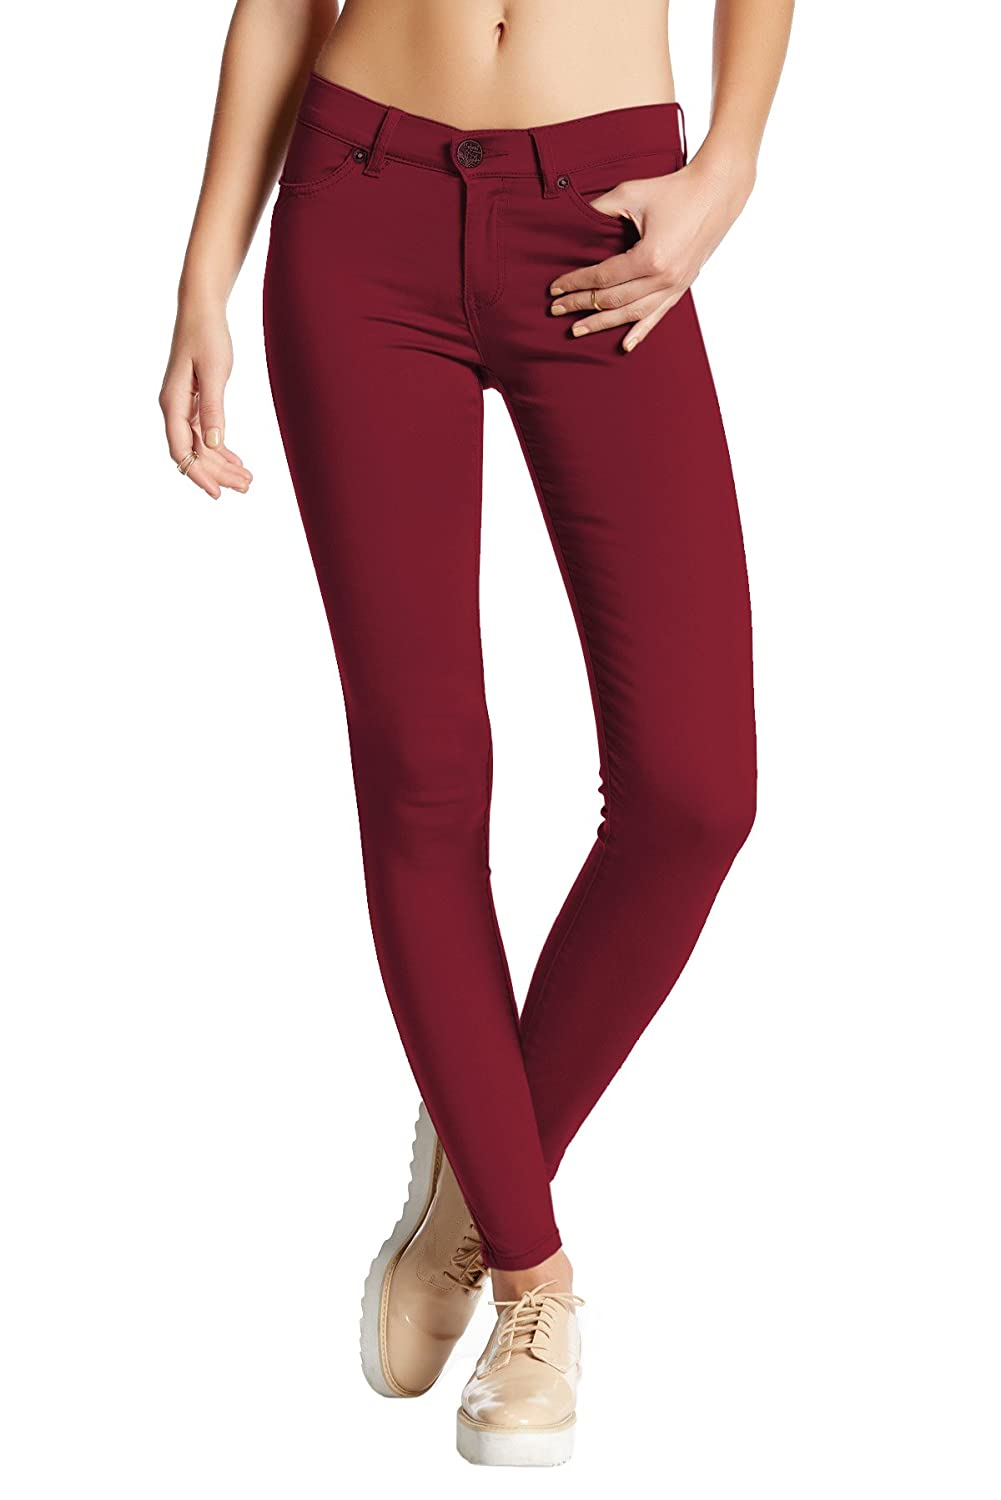 2dd296798678 Hybrid Womens Hyper Ultra Stretch Comfy Skinny Pants, Capri, Bermuda at  Amazon Women's Clothing store: